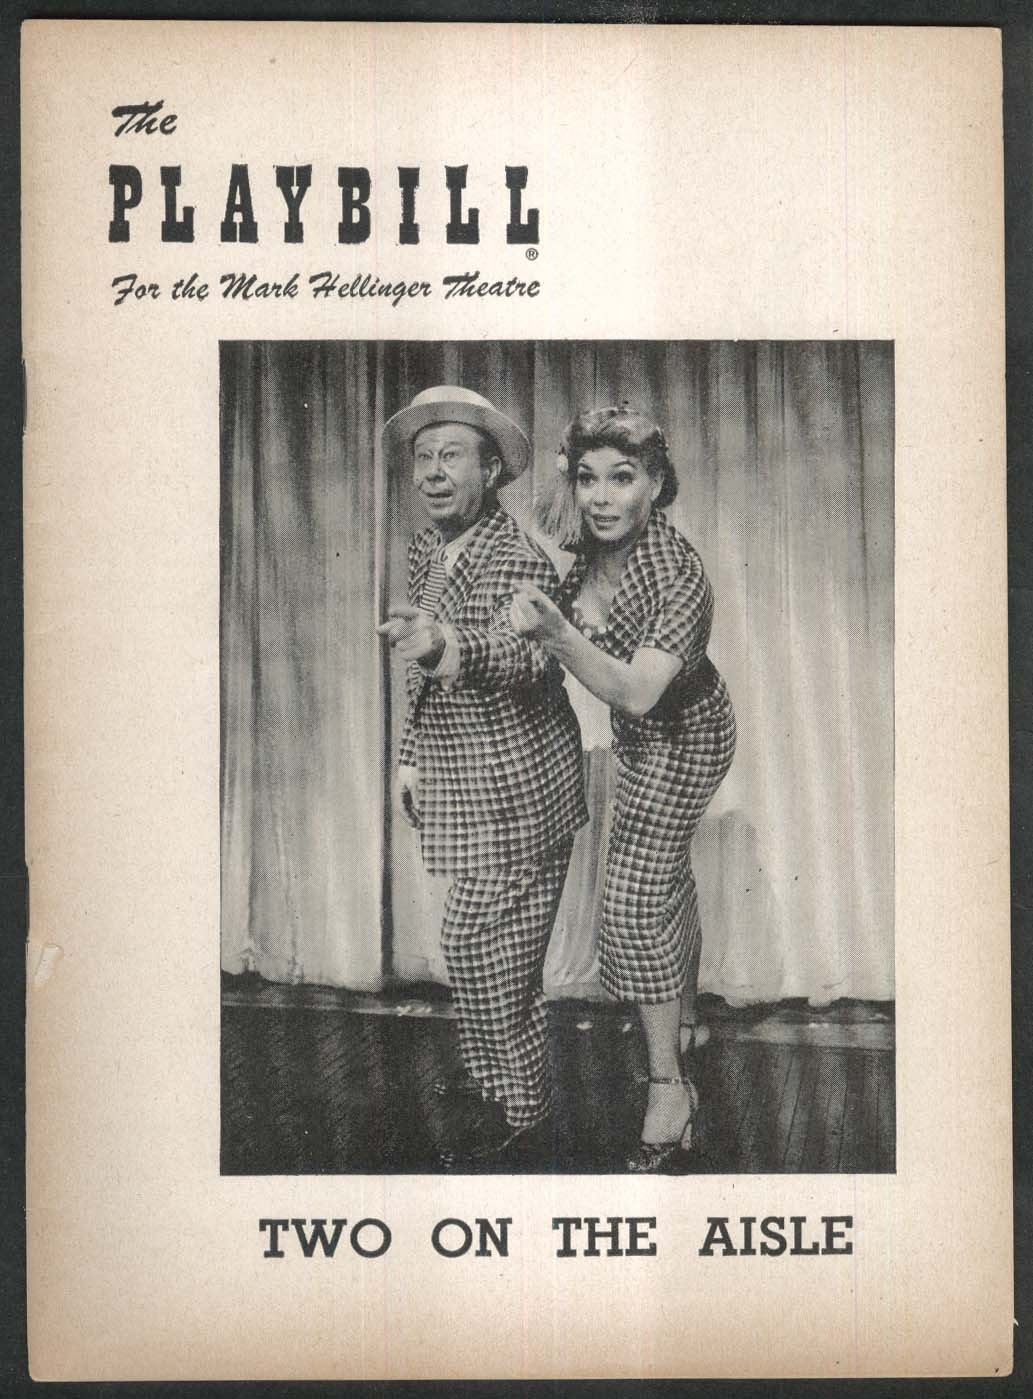 Bert Lahr Dolores Gray Two on the Aisle Playbill 1951